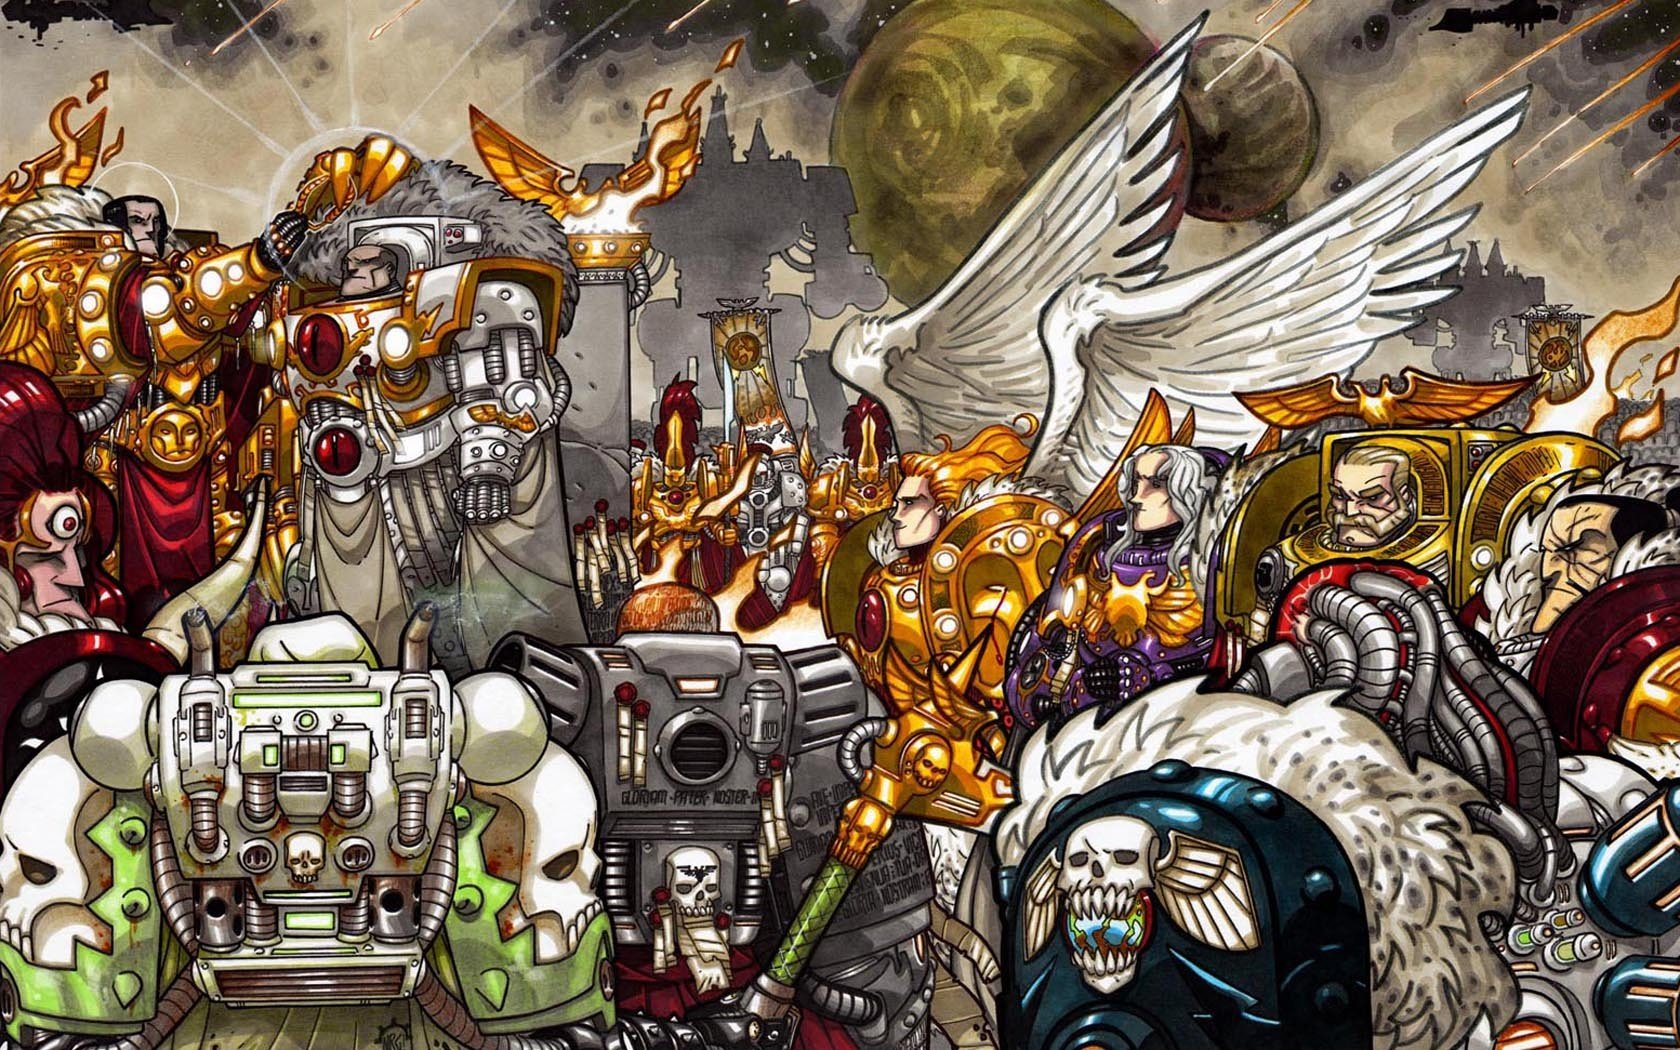 49 imperial fists wallpaper on wallpapersafari - Imperial fists 40k ...